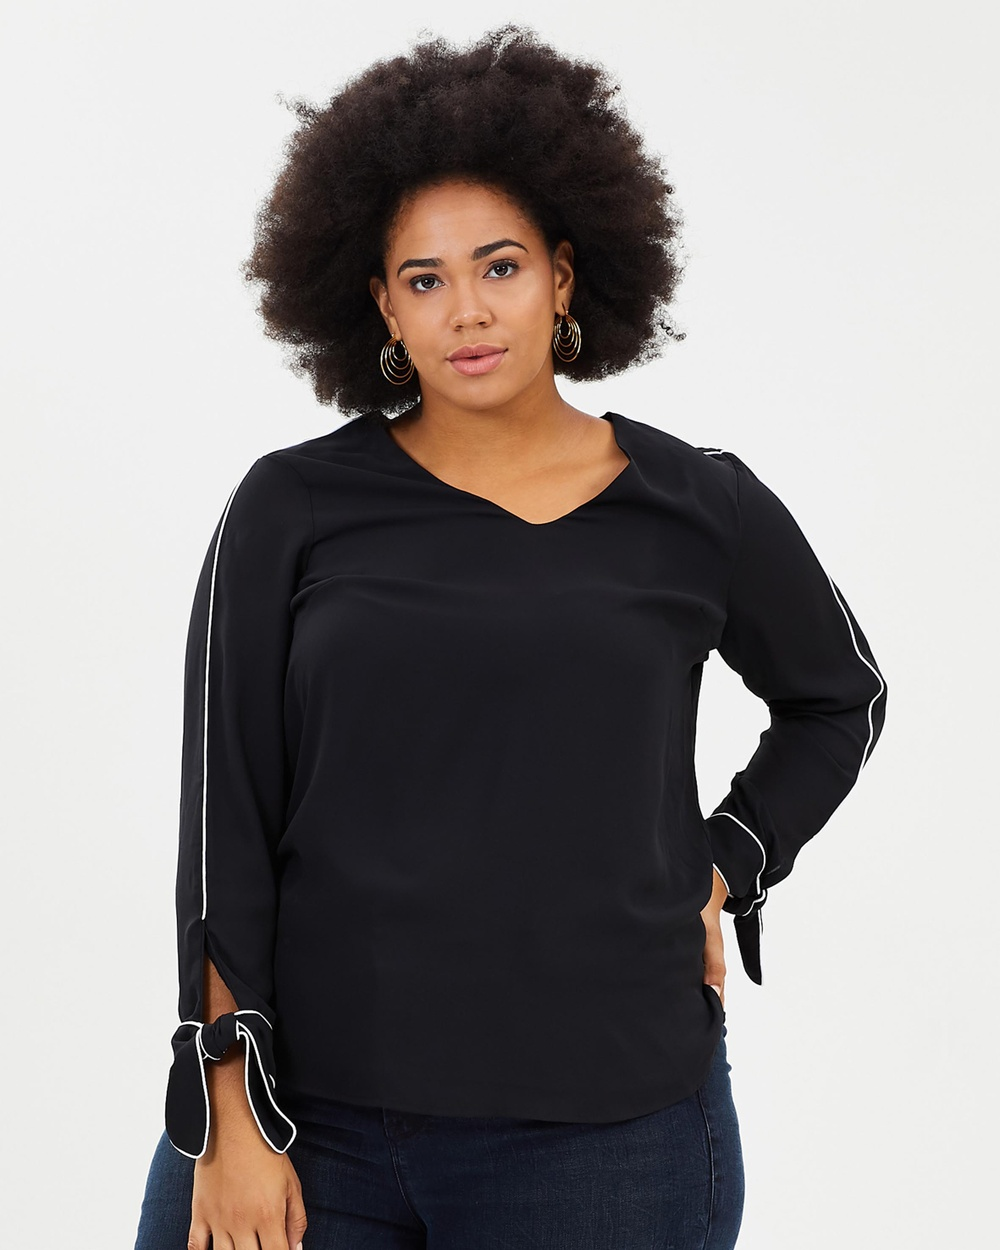 Rebel Wilson x Angels Piped Blouse With Cuff Details Tops Black Piped Blouse With Cuff Details